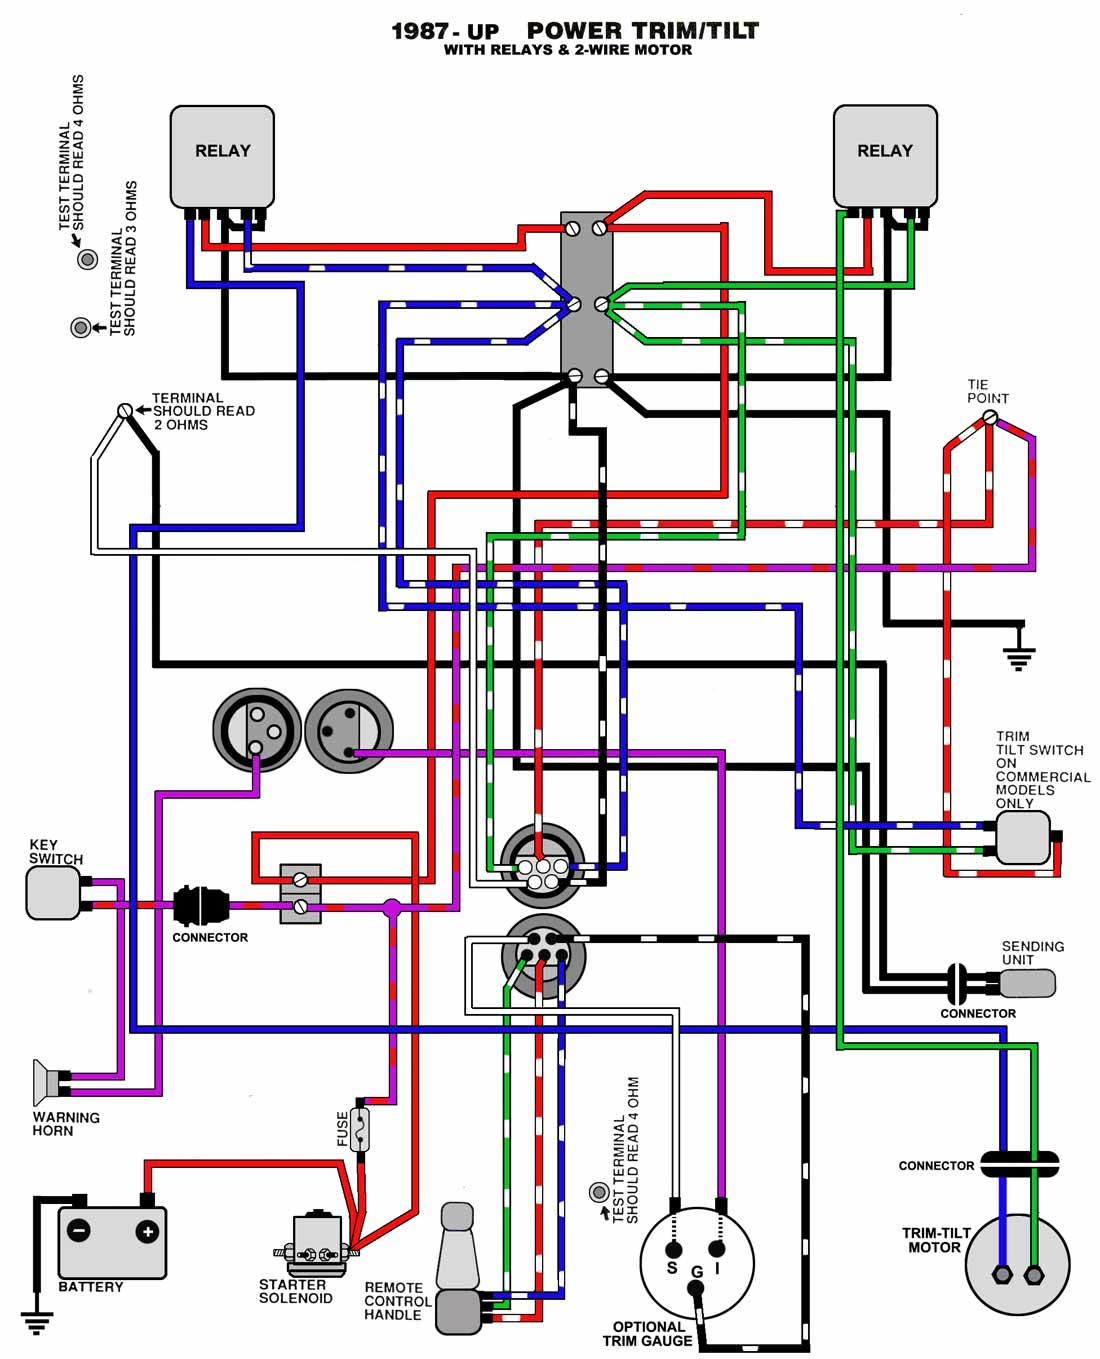 TnT_87_UP mastertech marine evinrude johnson outboard wiring diagrams Boat Ignition Switch Wiring Diagram at readyjetset.co